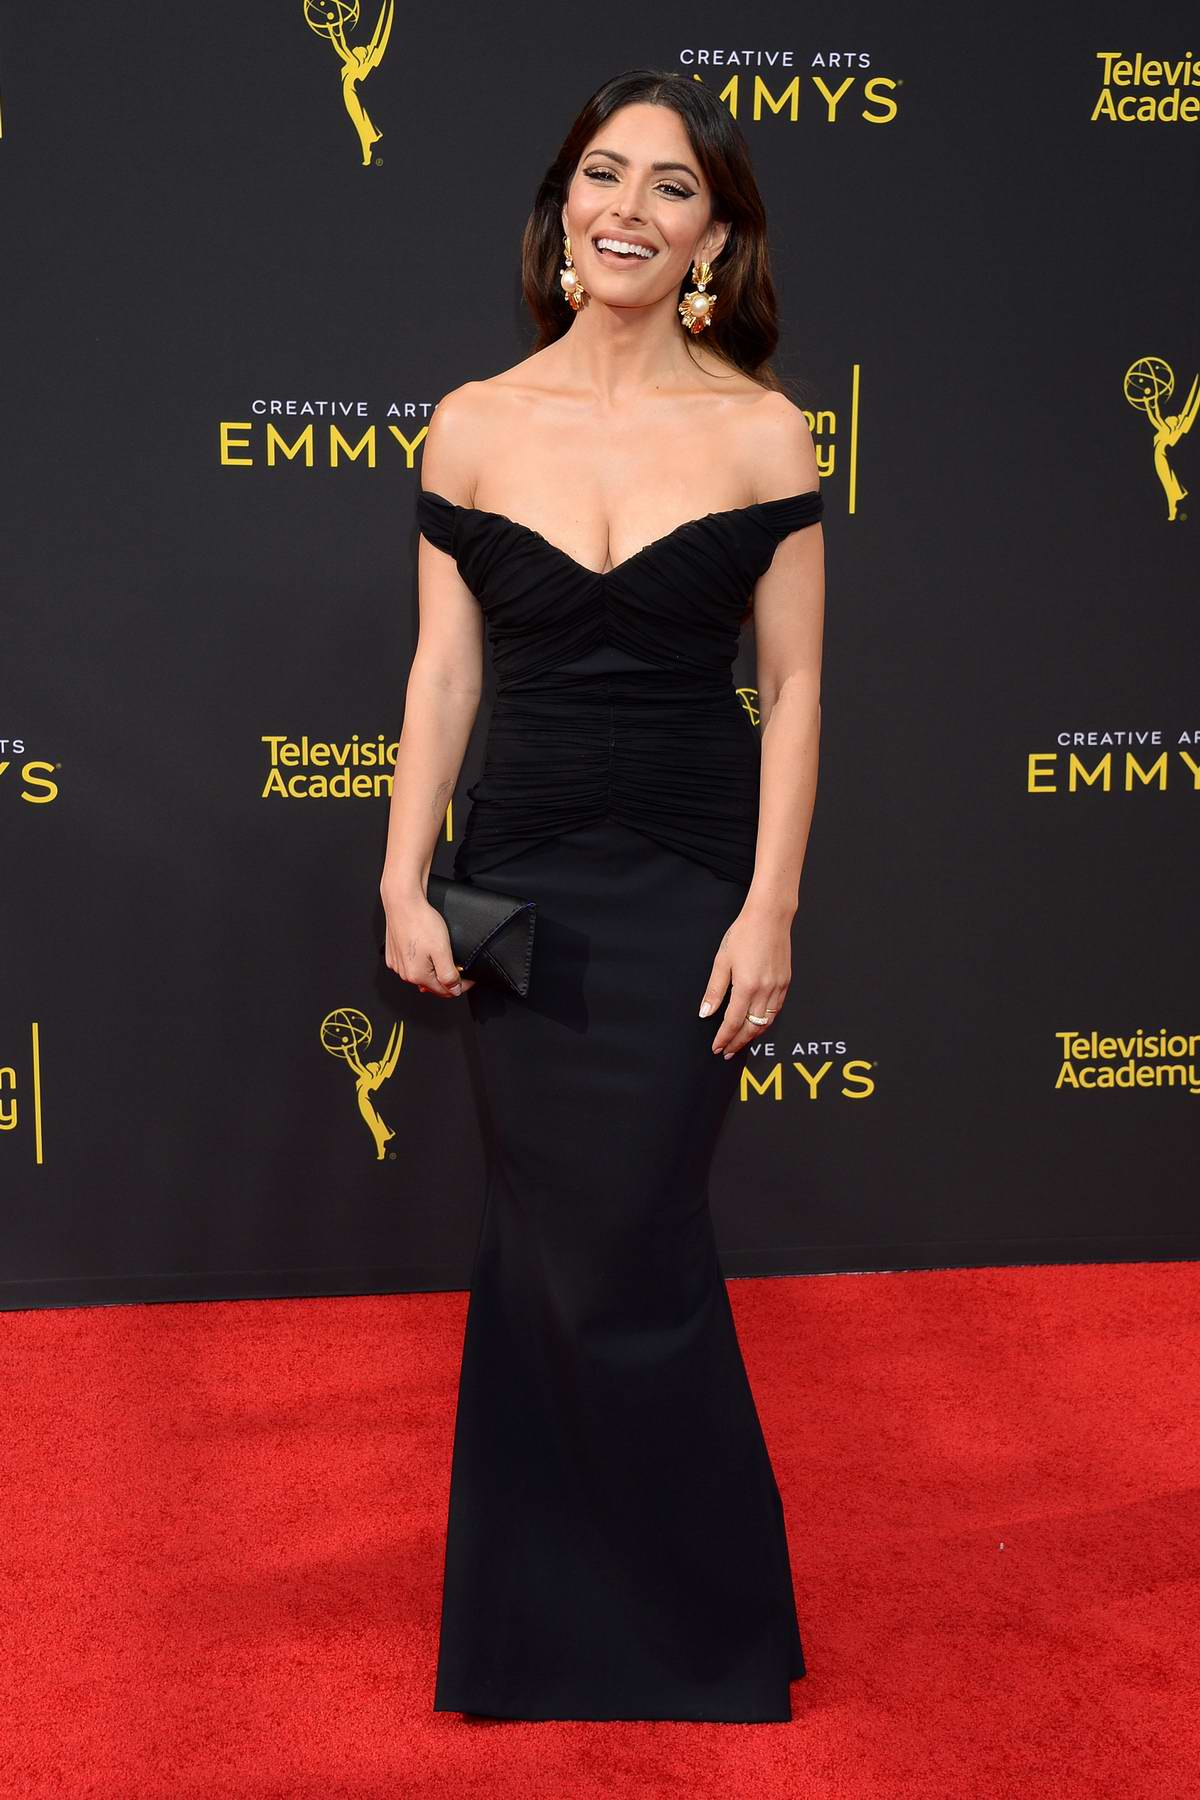 Sarah Shahi attends the 71st Annual Primetime Creative Arts Emmy Awards, Day 2 at Microsoft Theater in Los Angeles